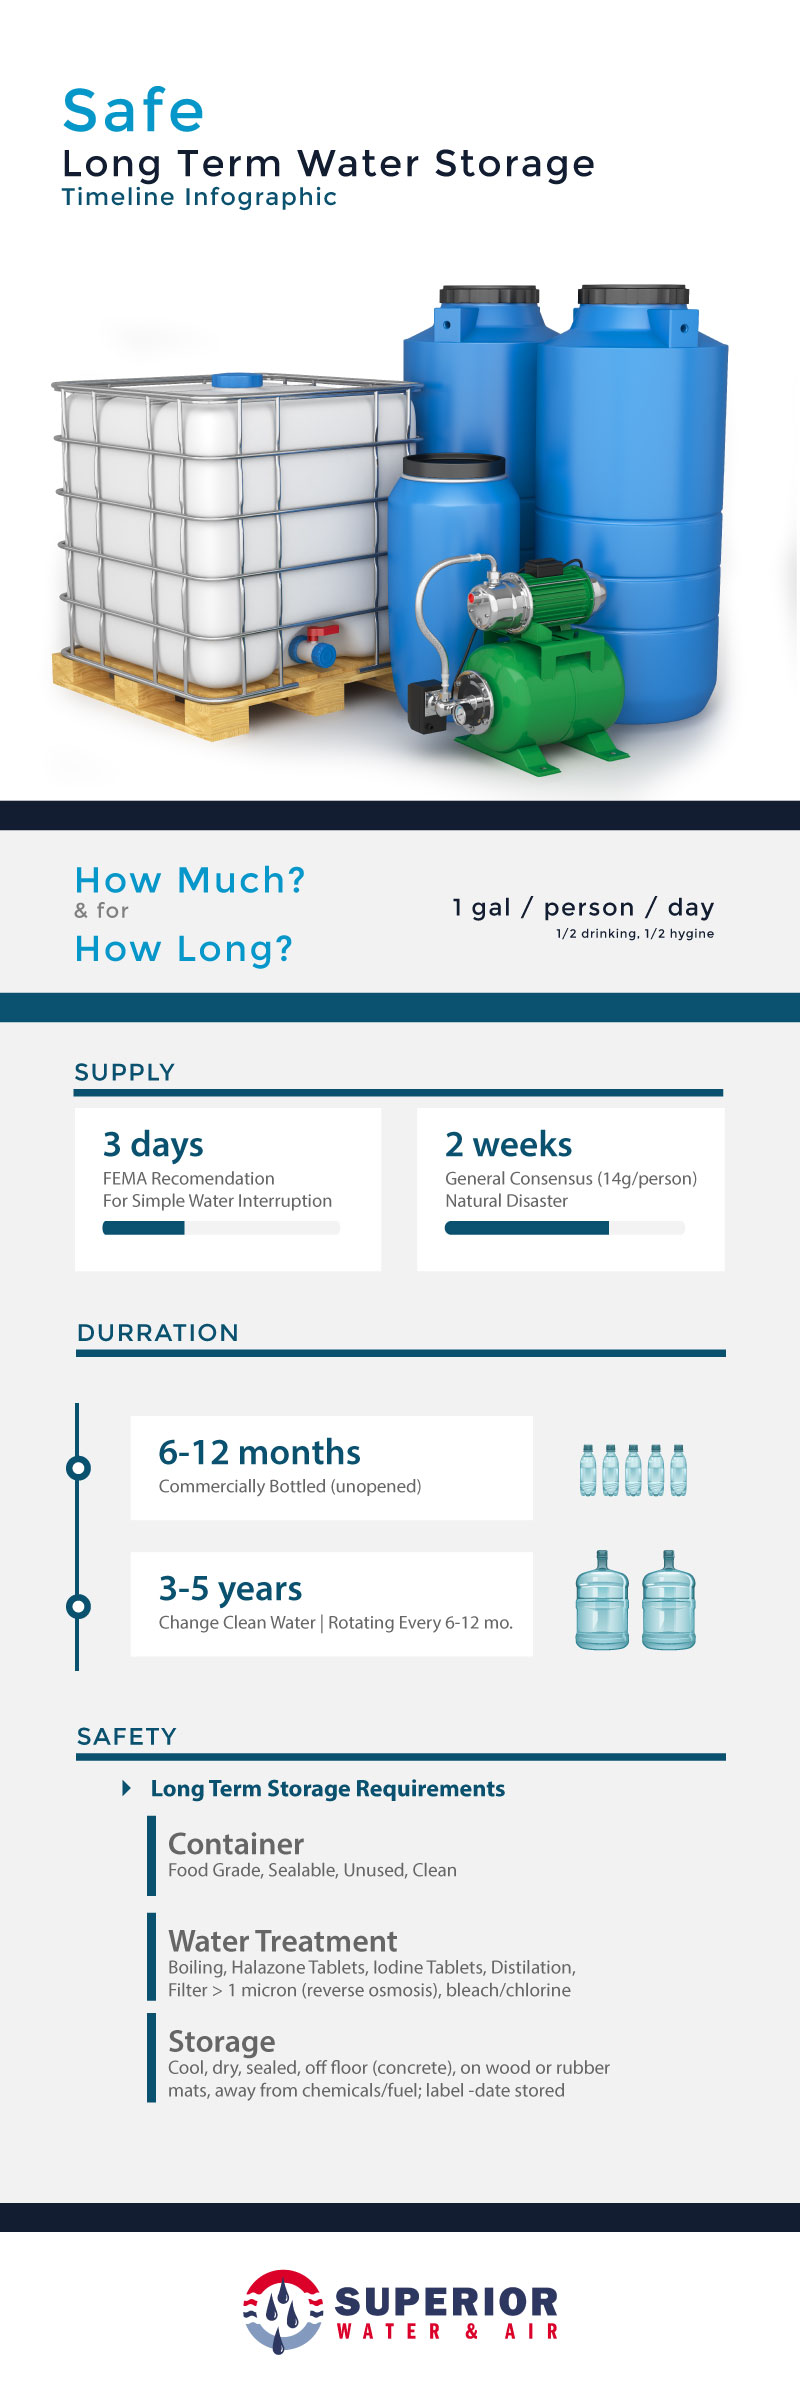 Safe Long Term Water Storage Timeline Infographic Long